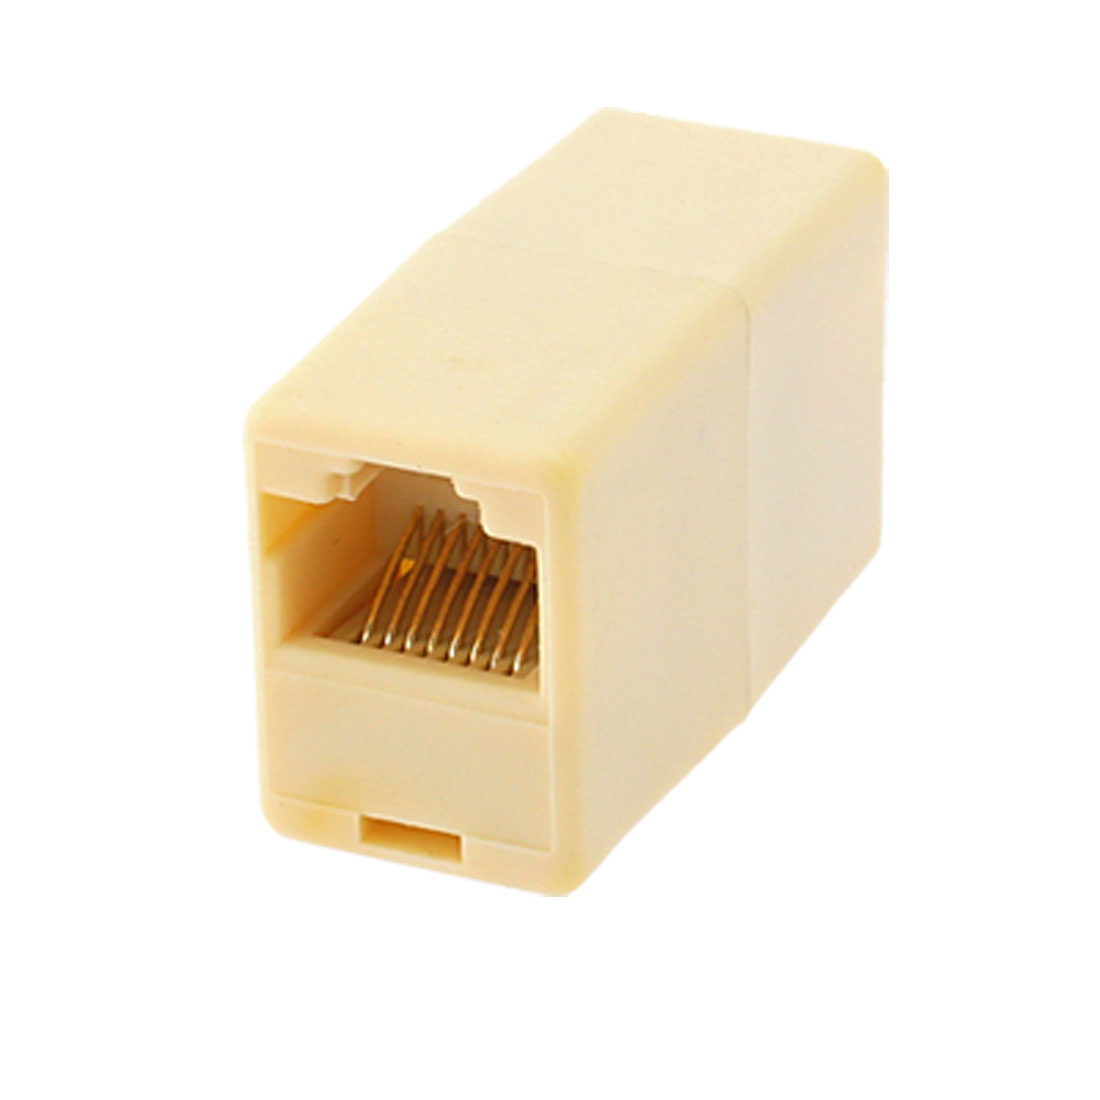 RJ45 Connector CAT 5 Plug Joiner Light Yellow